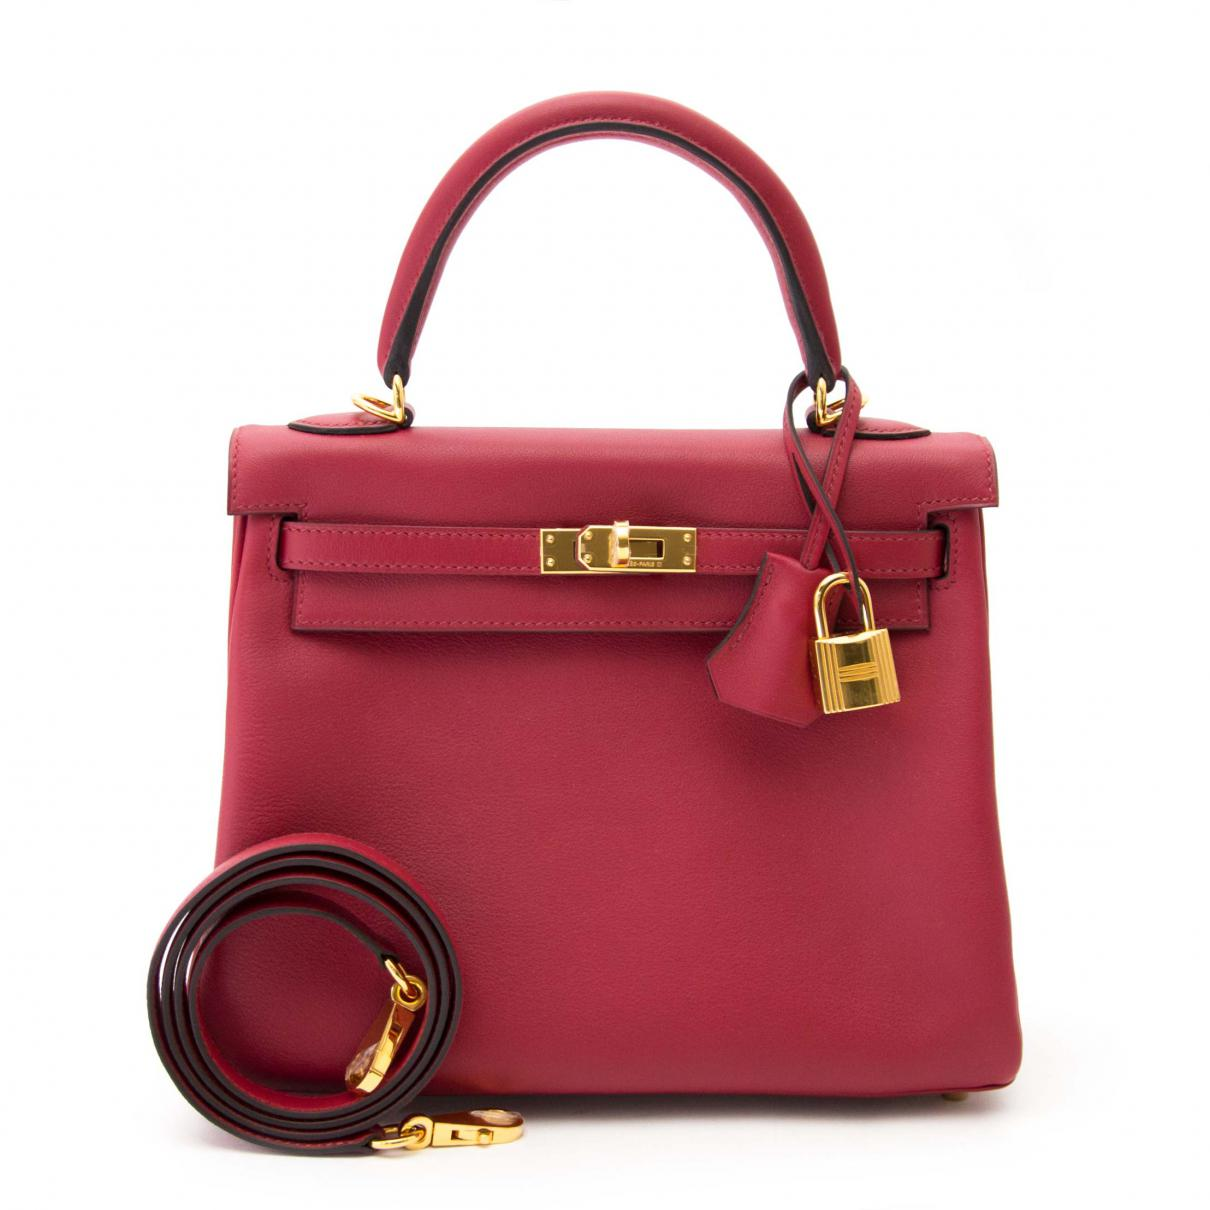 802187c026 Lyst - Hermès Pre-owned Kelly 25 Red Leather Handbags in Red